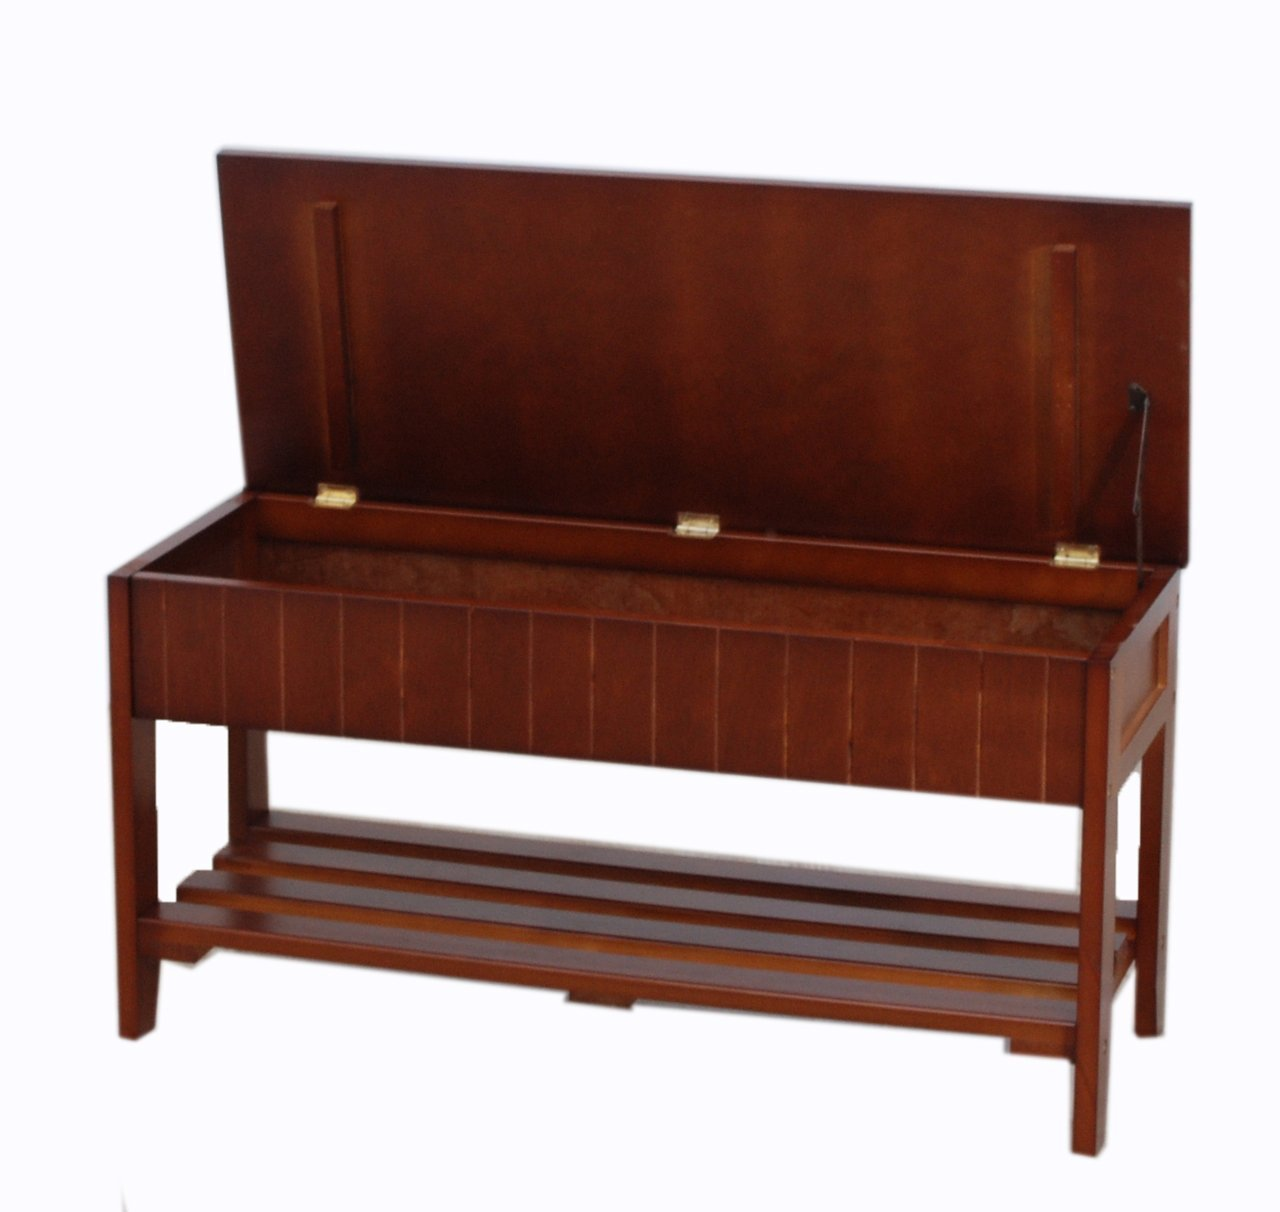 Legacy Decor Solid Wood Shoe Bench Rack with Storage, White and Walnut Color (Walnut)